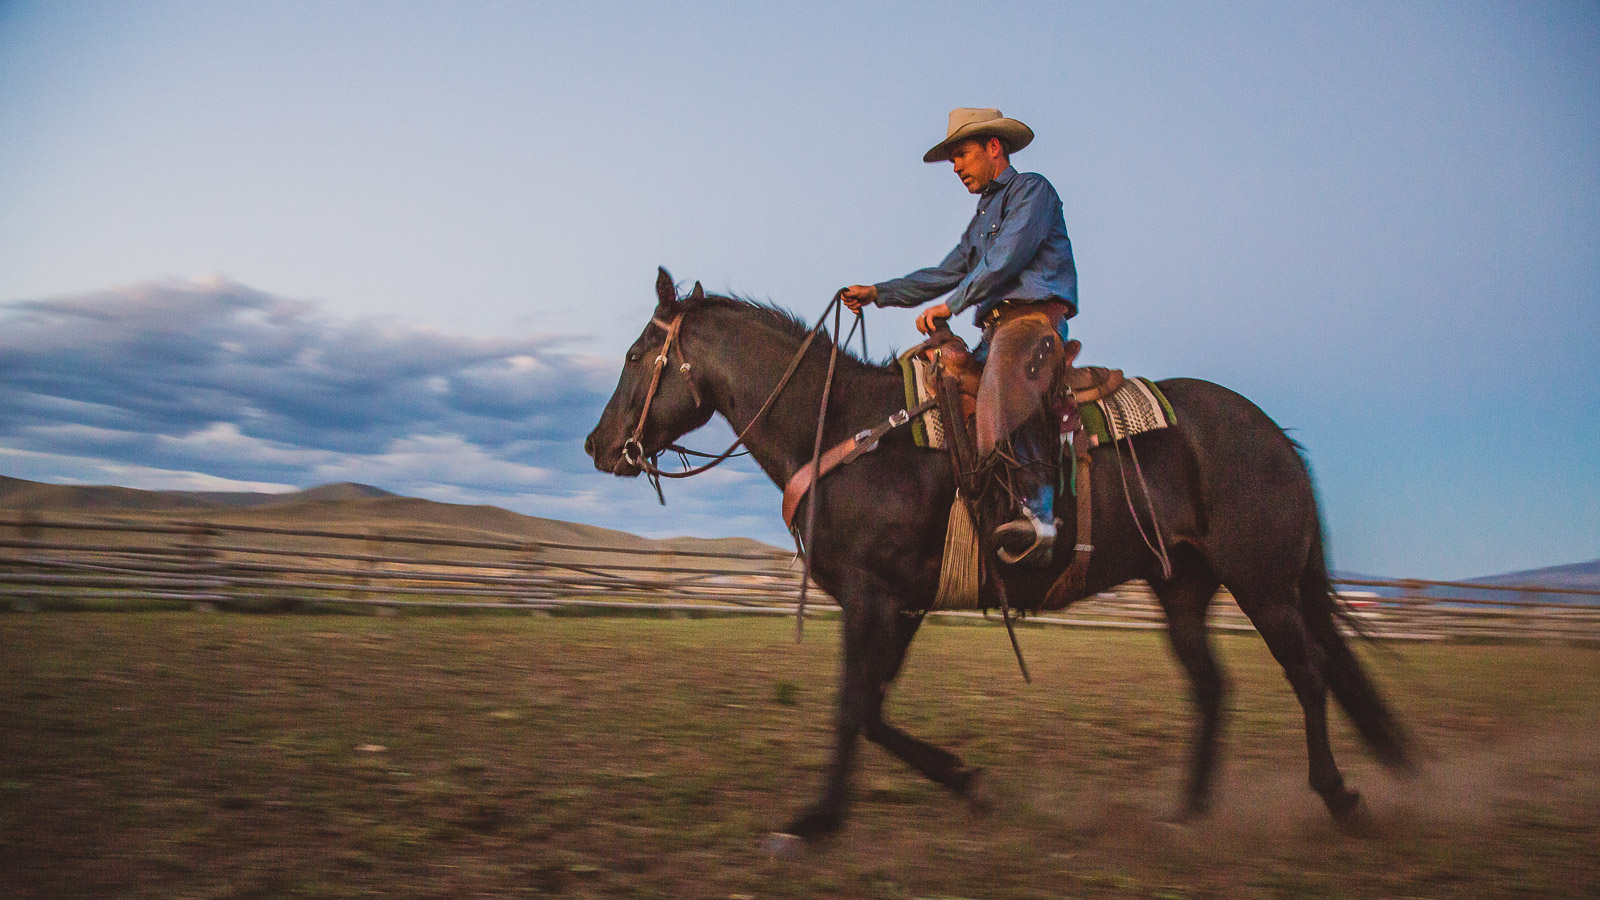 photographer, dream, goal, natgeo, national geographic, horse, cowboy, horsemanship, natural horsemanship, montana, usa, ranch, horses,